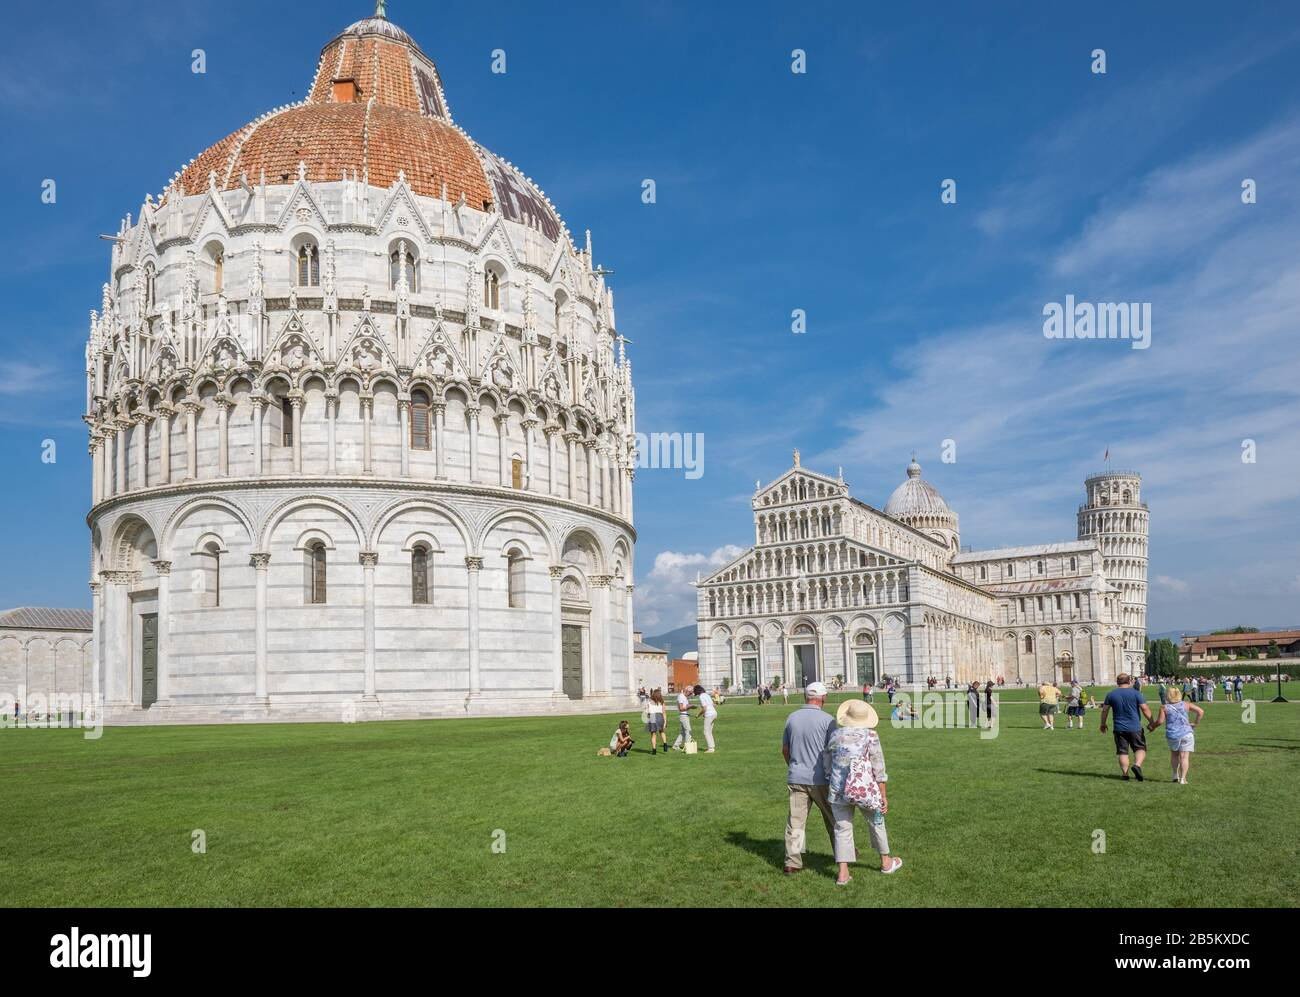 The world famous Piazza dei Miracoli in Pisa, Tuscany.  The construction of the cathedral was begun in 1064. Stock Photo